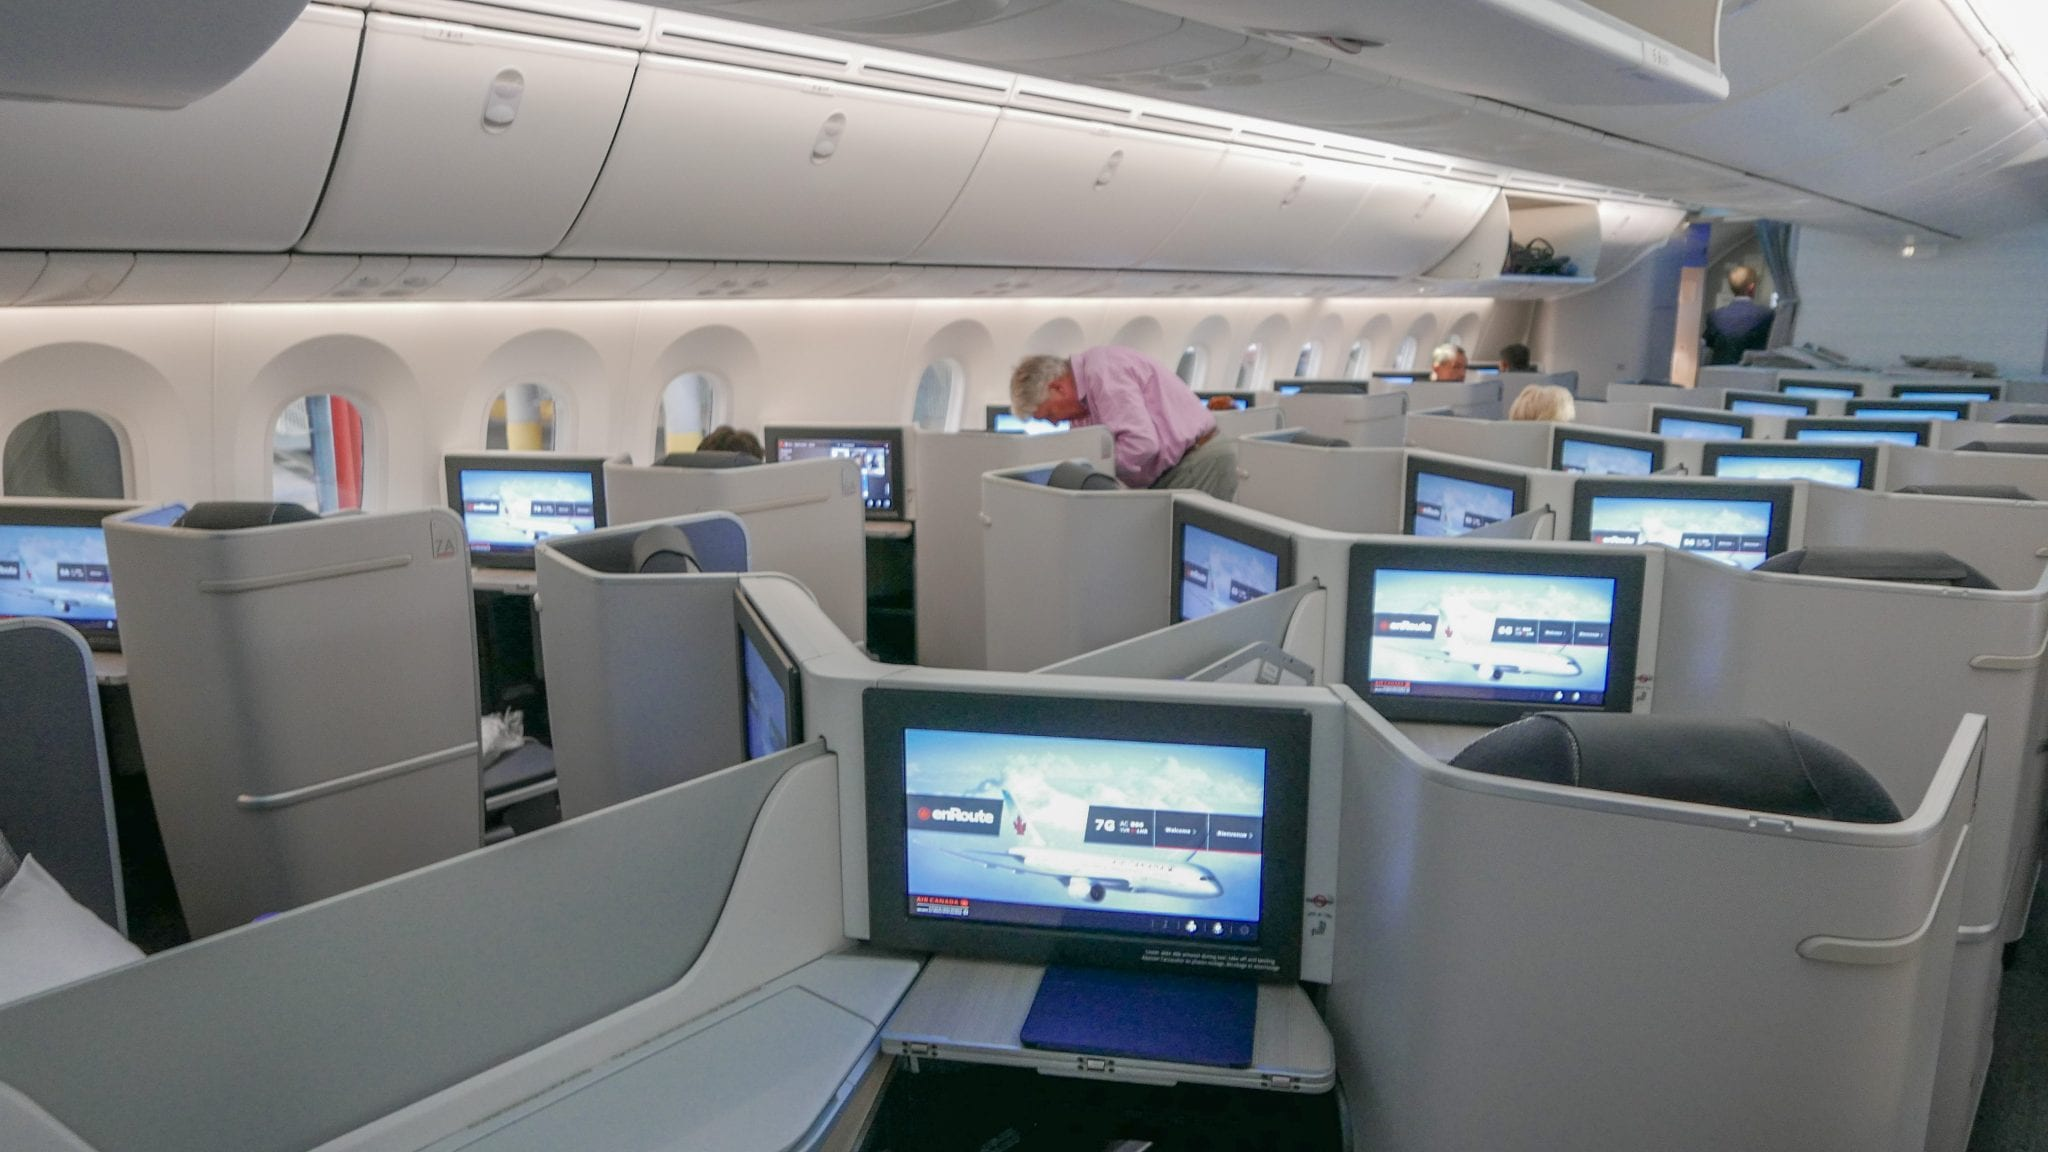 AC dreamliner 3 - REVIEW - Air Canada : Business Class - Vancouver to London LHR (B789)